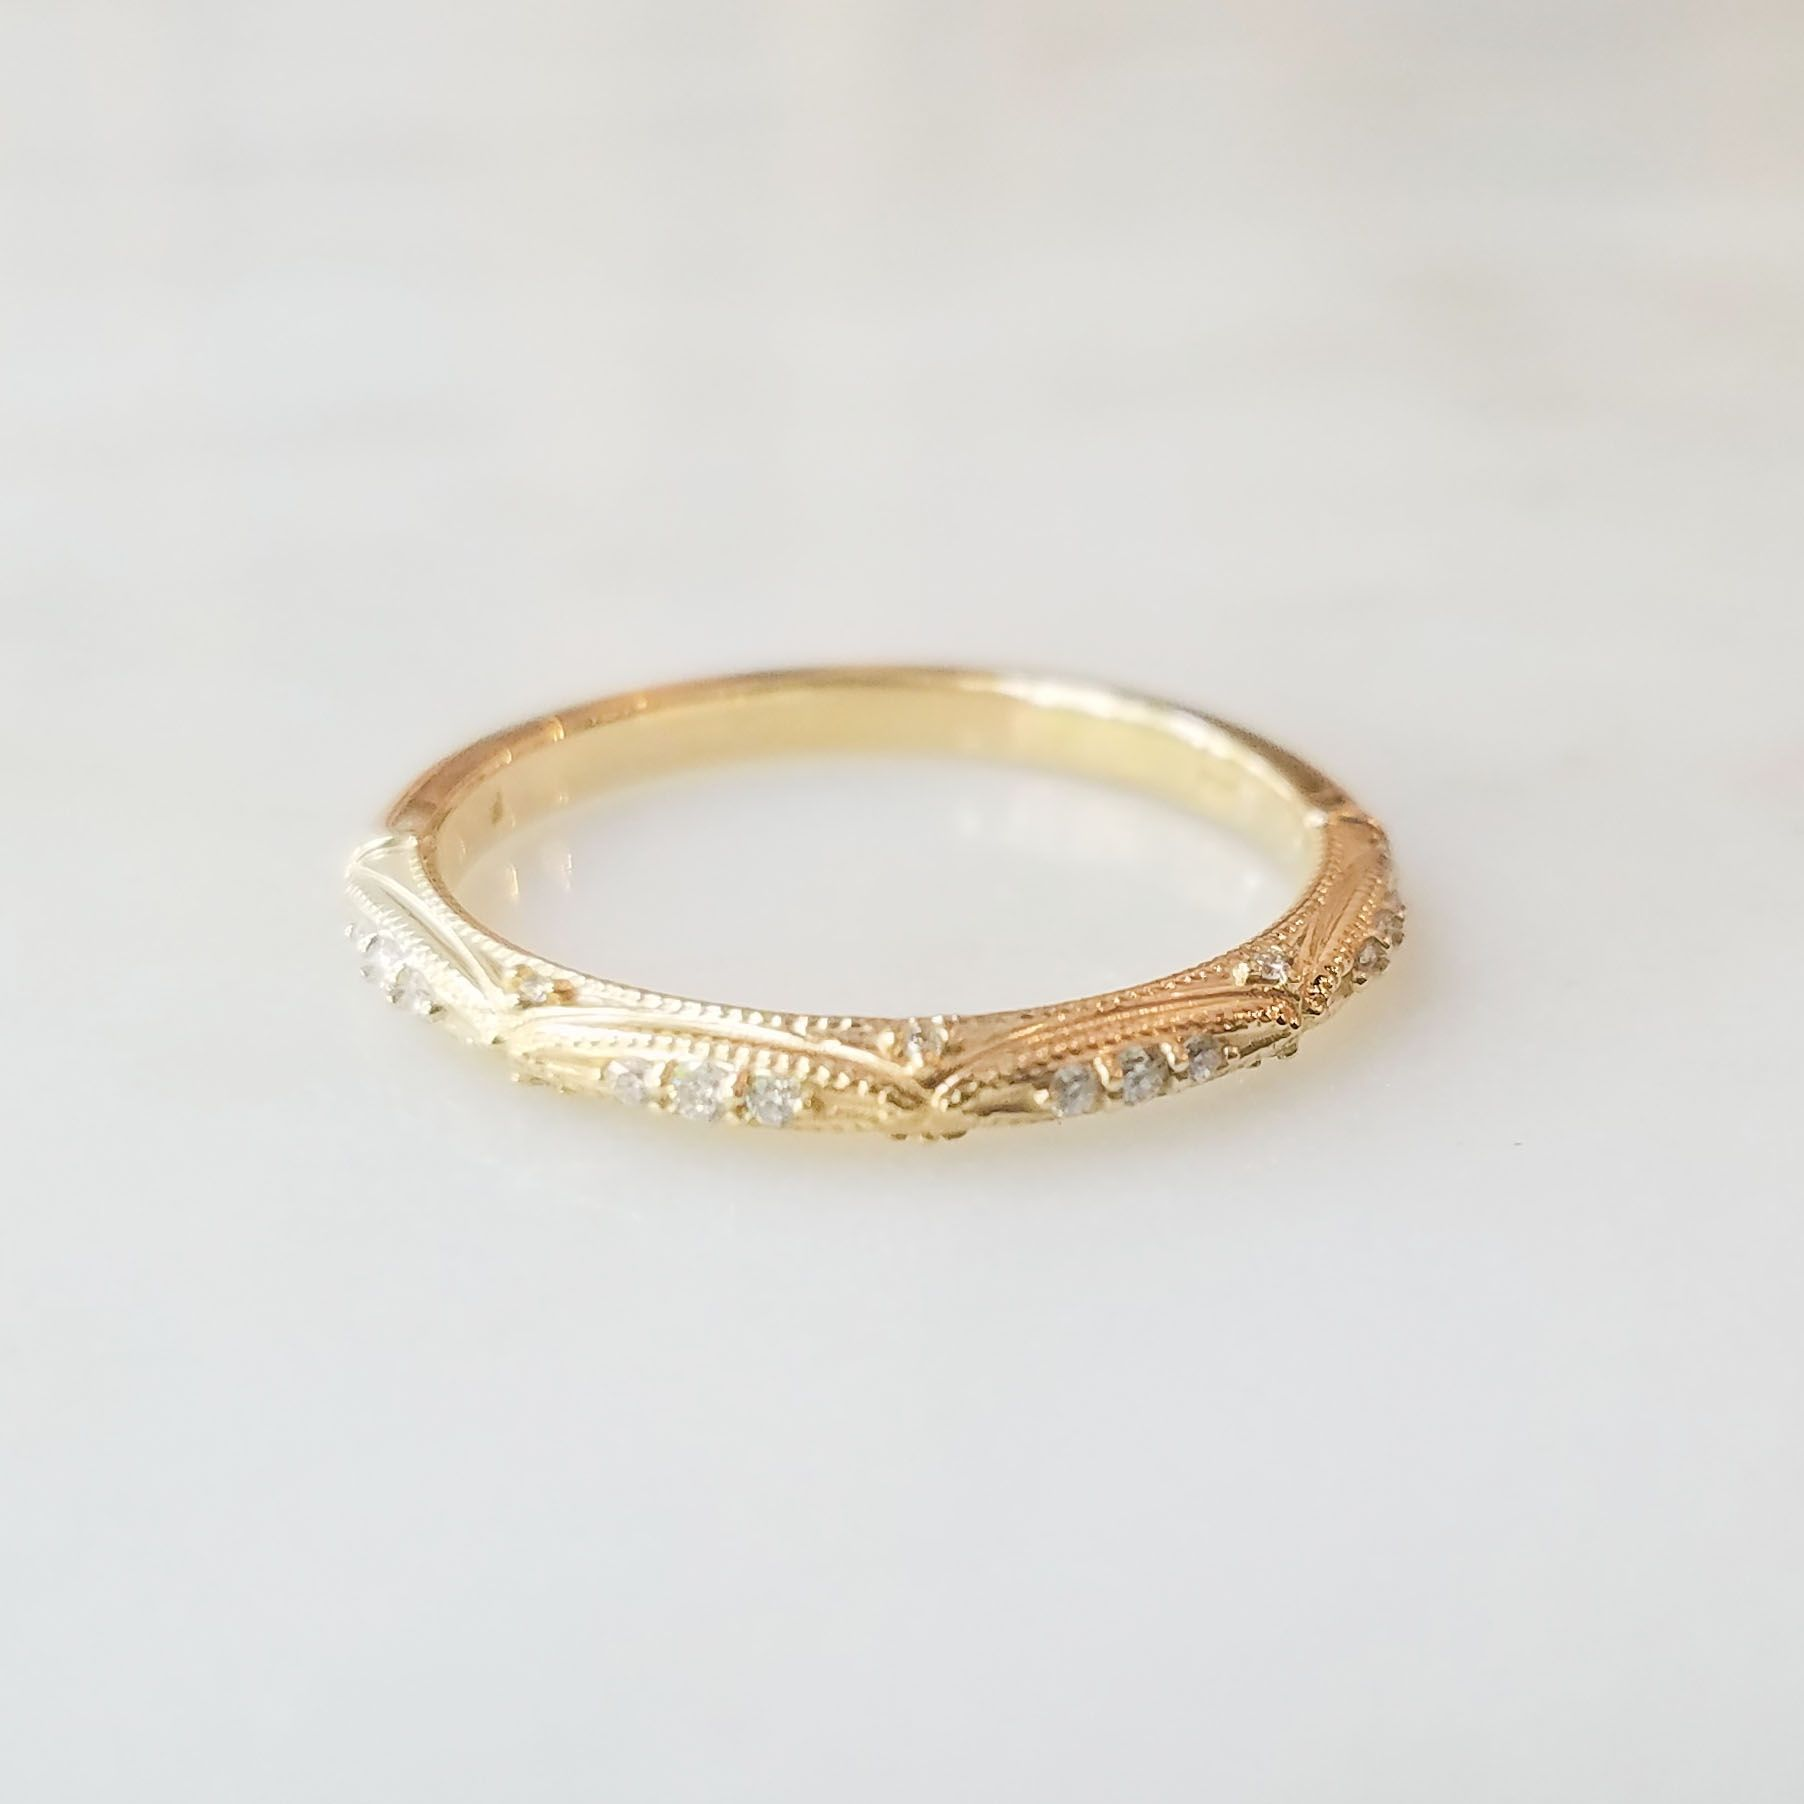 Vintage Style Yellow Gold Wedding Band Gold Wedding Bands Women Gold Wedding Band Yellow Gold Wedding Band